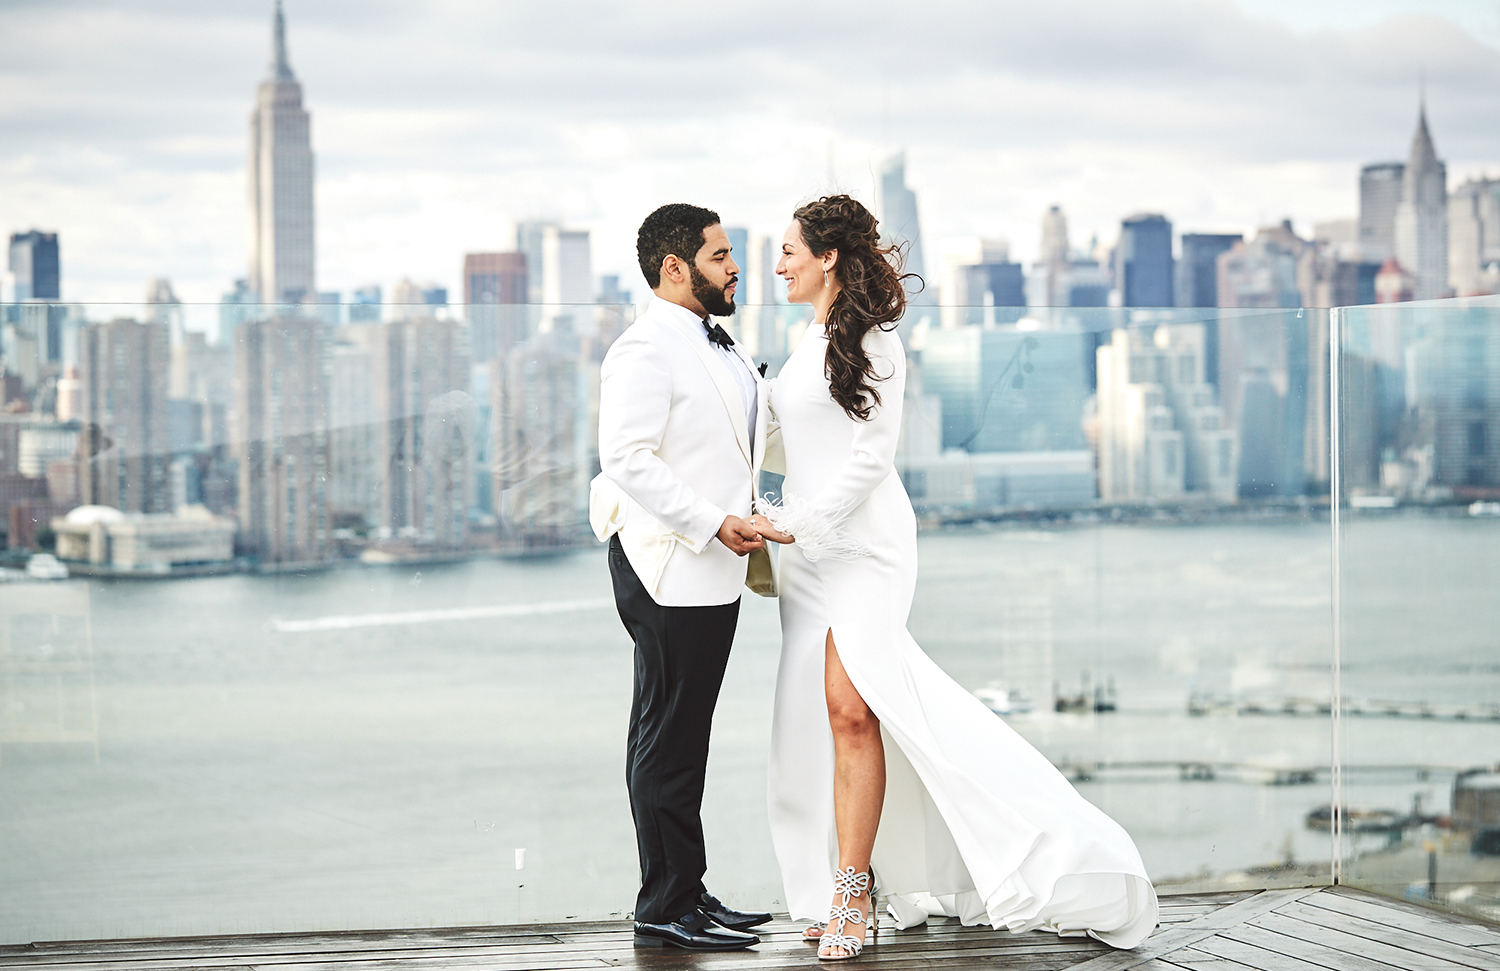 170930_WilliamValeWeddingPhotography_BrooklynWeddingPhotographer_By_BriJohnsonWeddings_0083.jpg